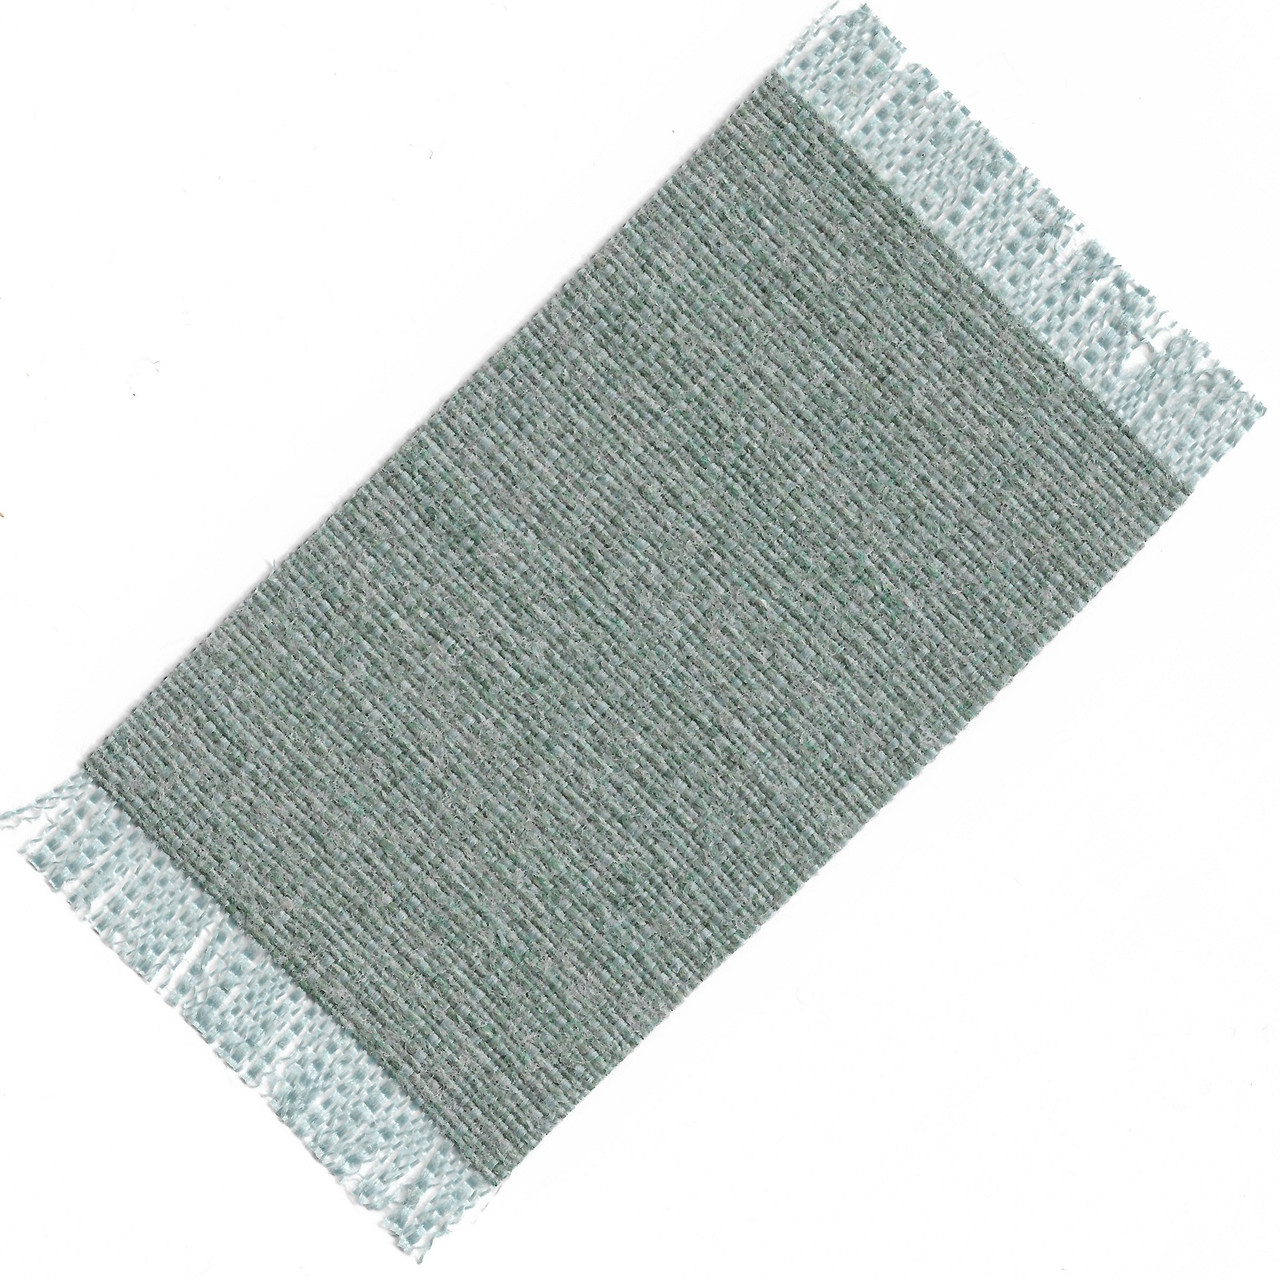 Small Rug in Aqua and Turquoise